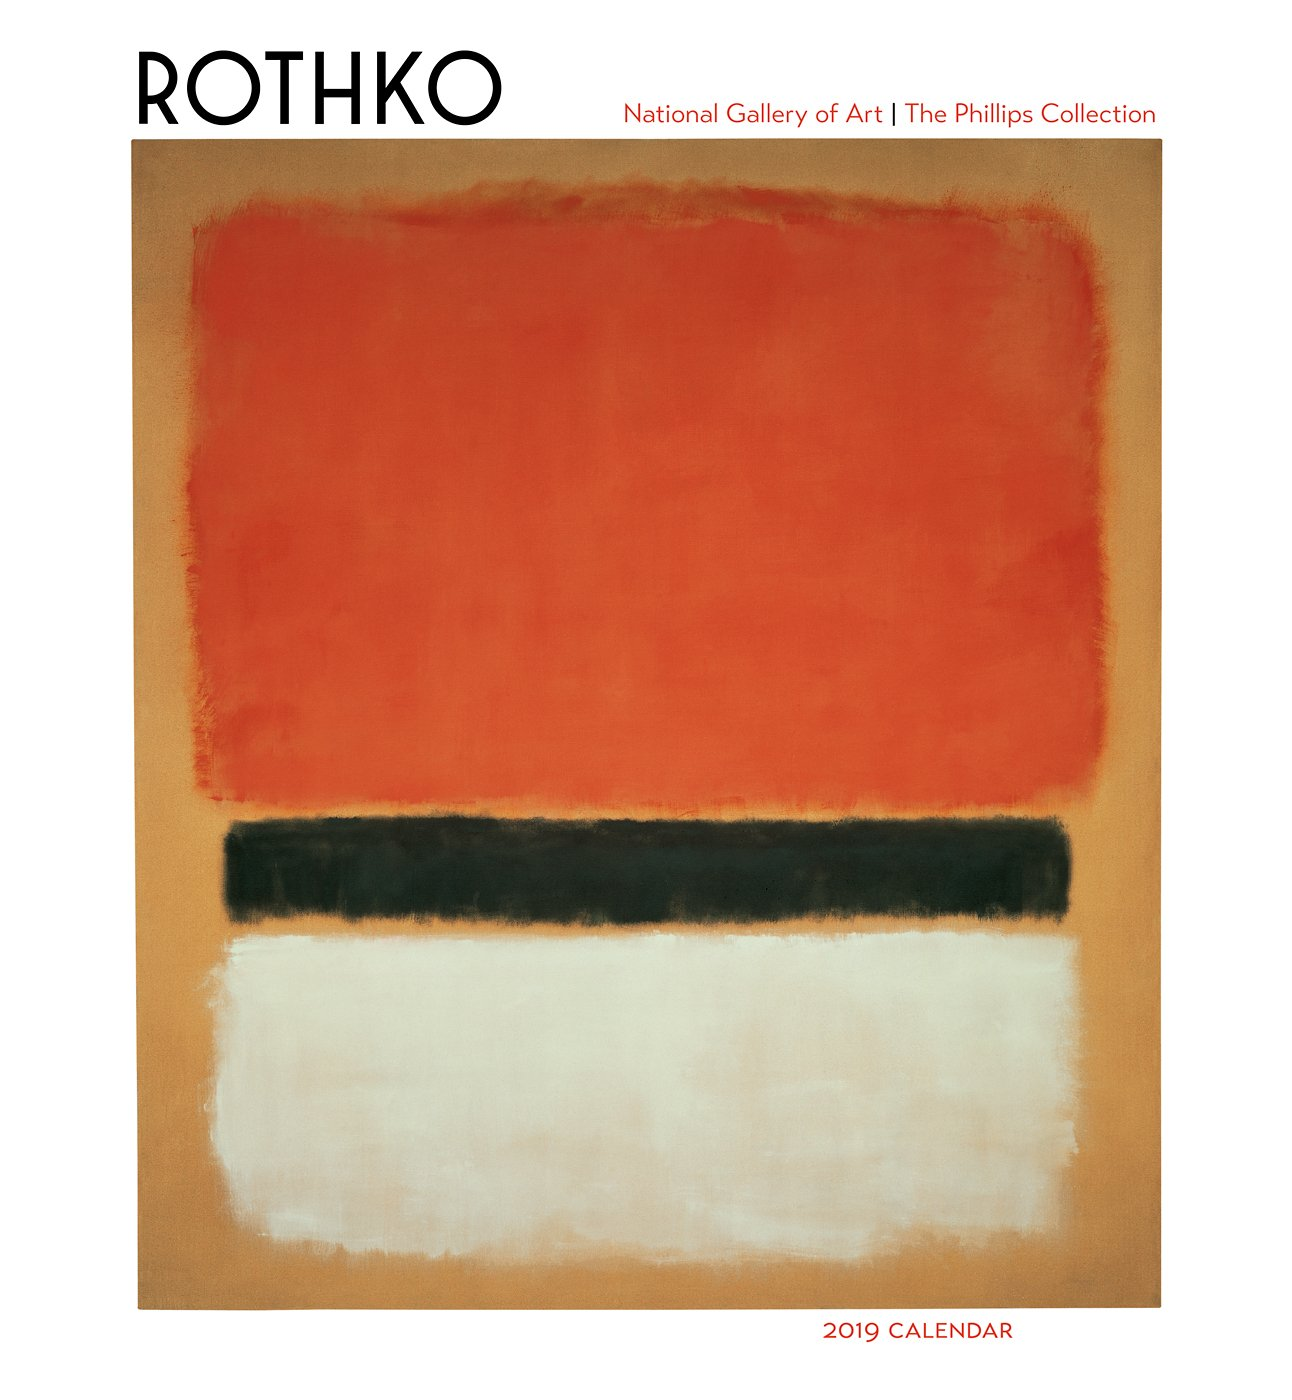 Rothko 2019 Wall Calendar: National Gallery of Art and The Phillips  Collection: 9780764980107: Amazon.com: Books